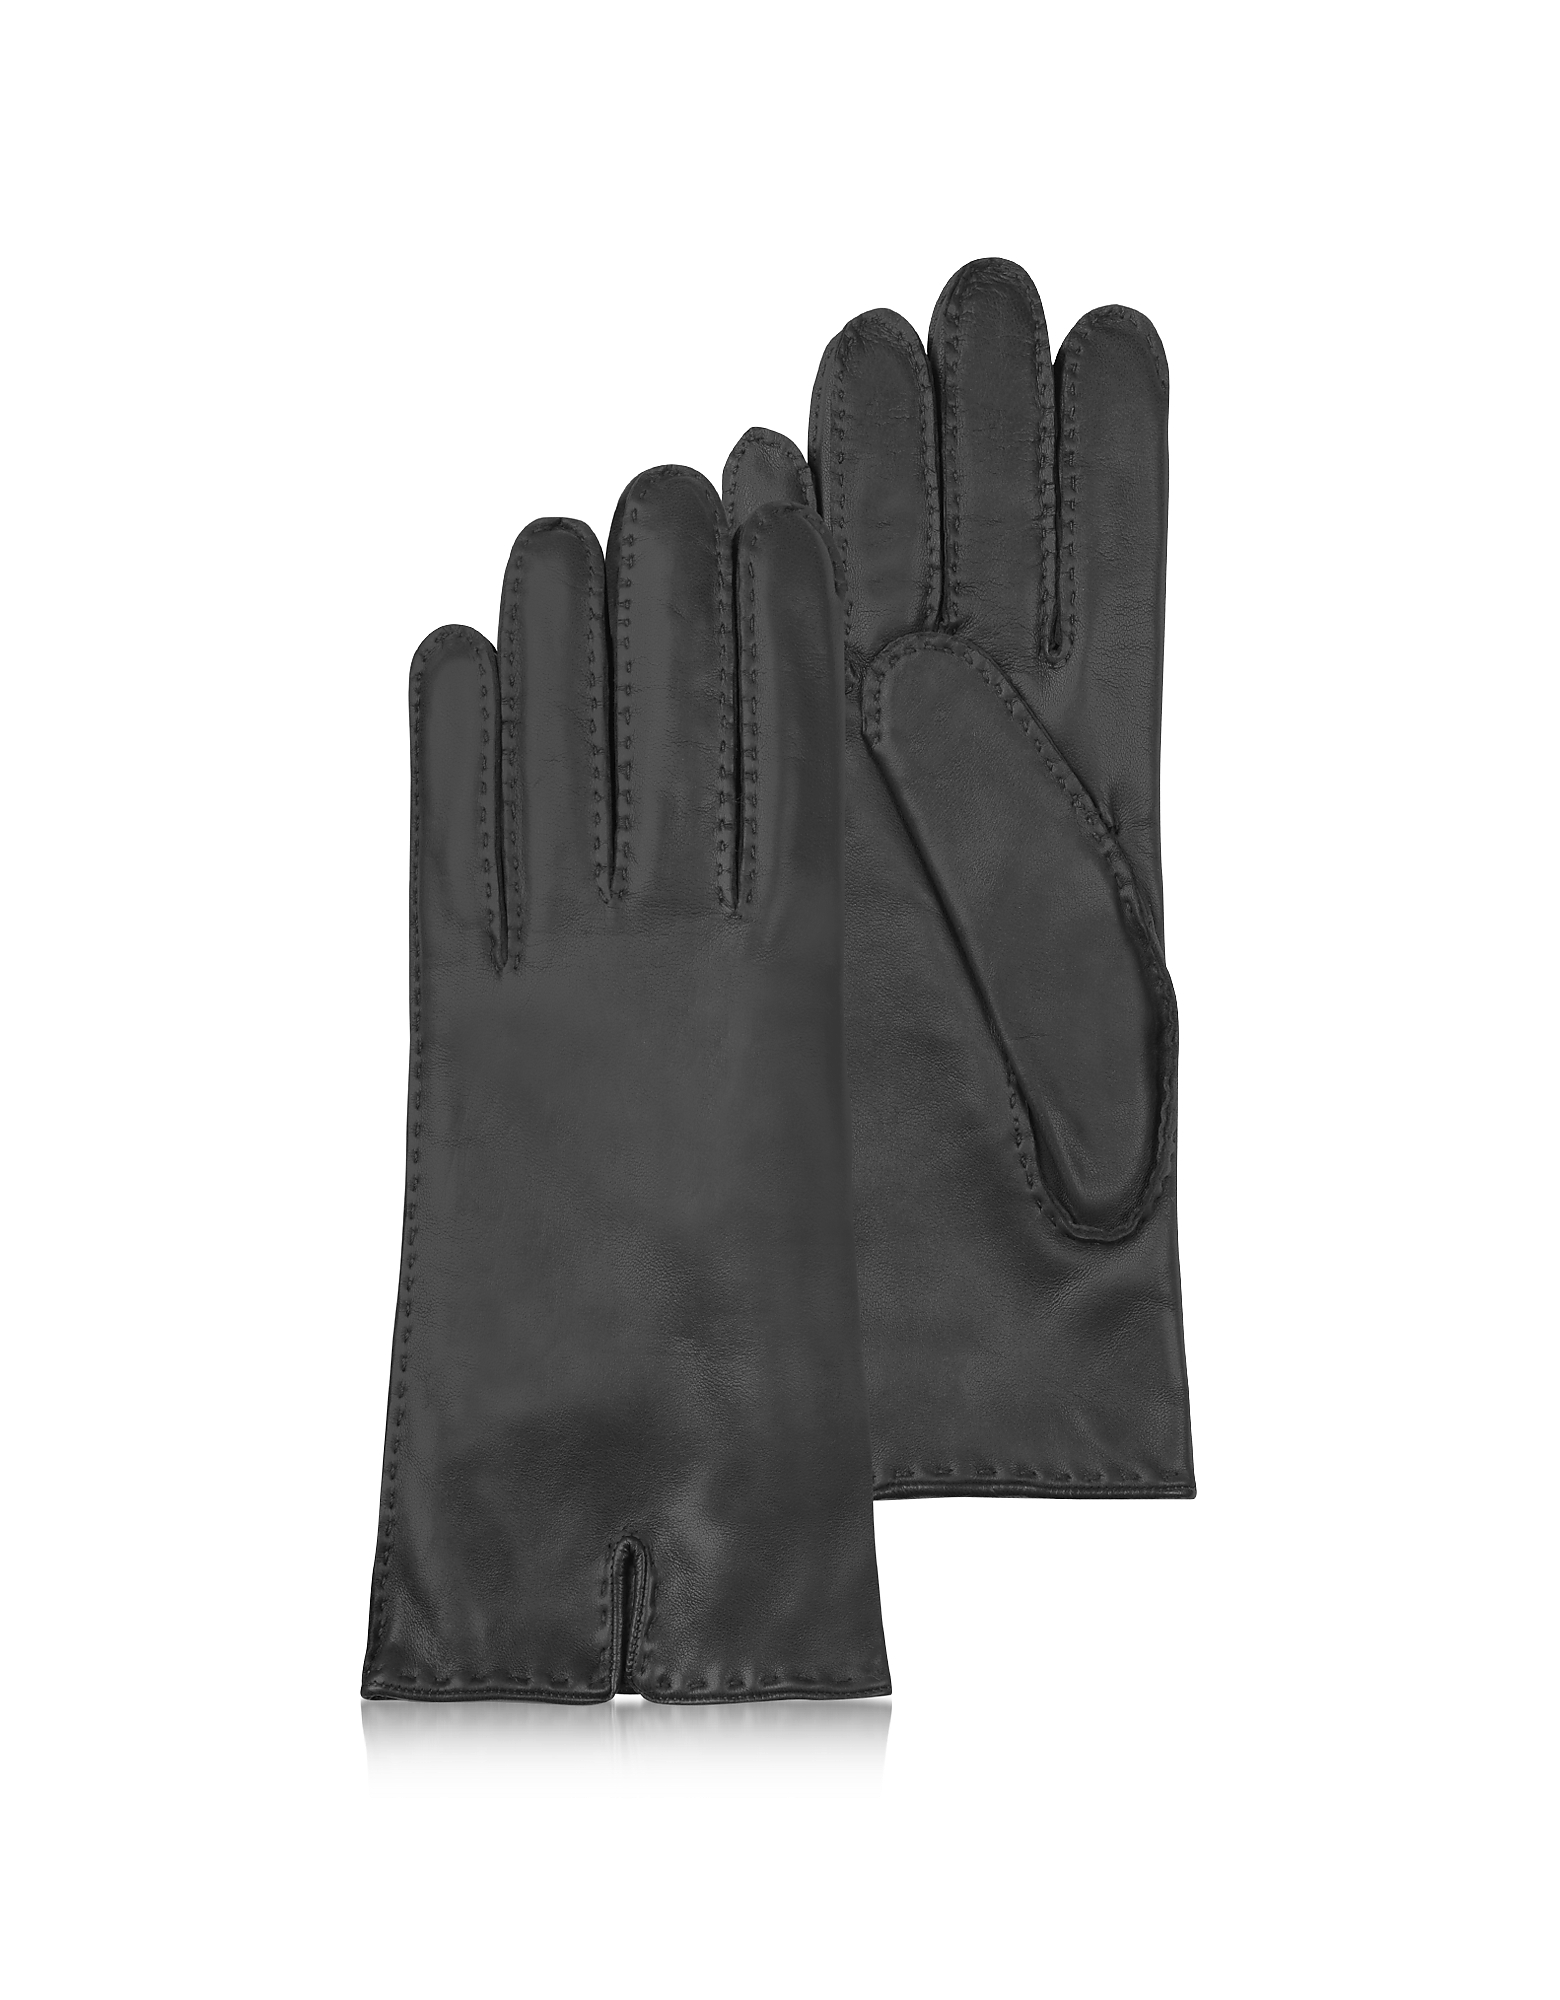 Forzieri Women's Gloves, Women's Cashmere Lined Black Italian Leather Gloves